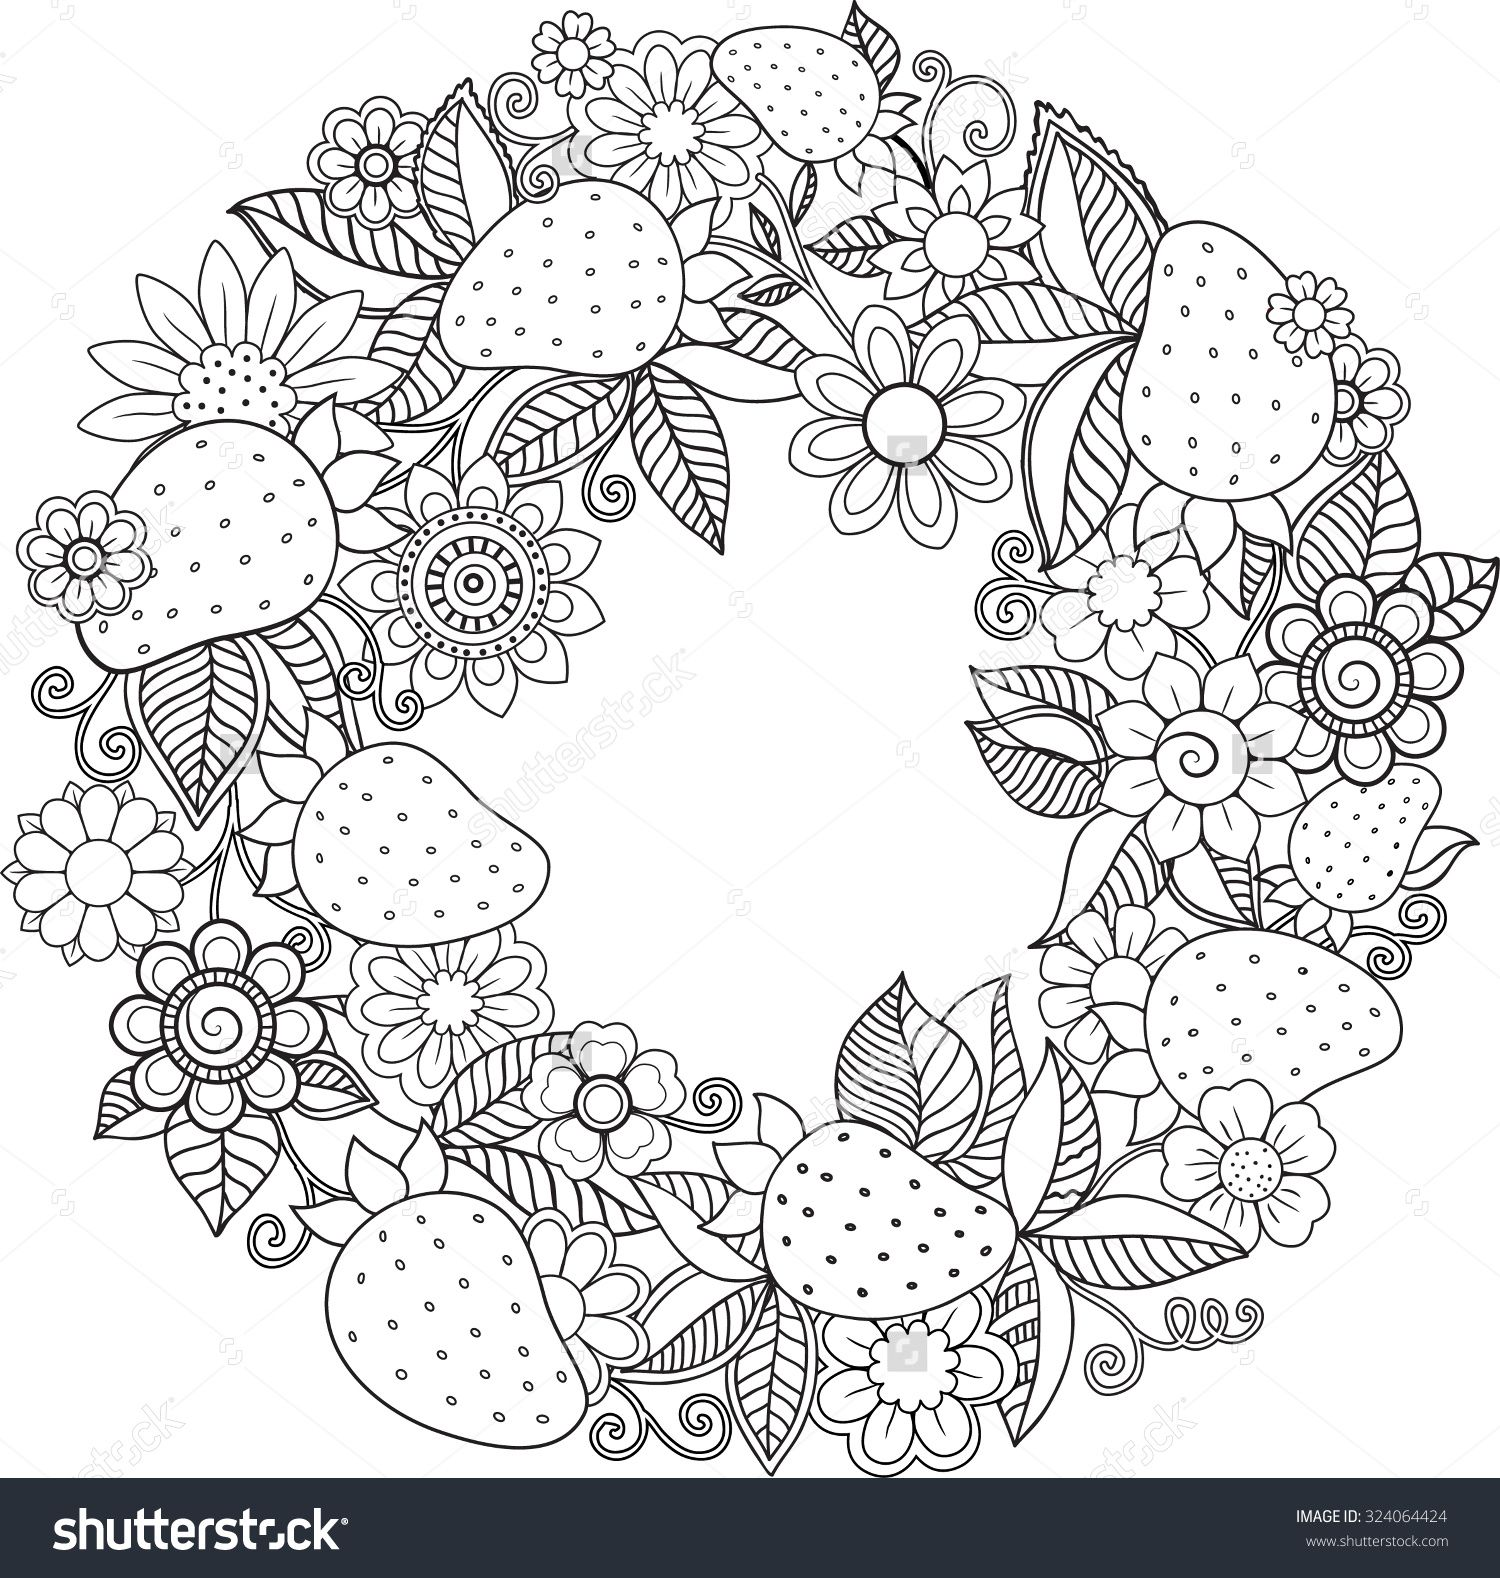 Decorative wreath with strawberries and flowers colorir